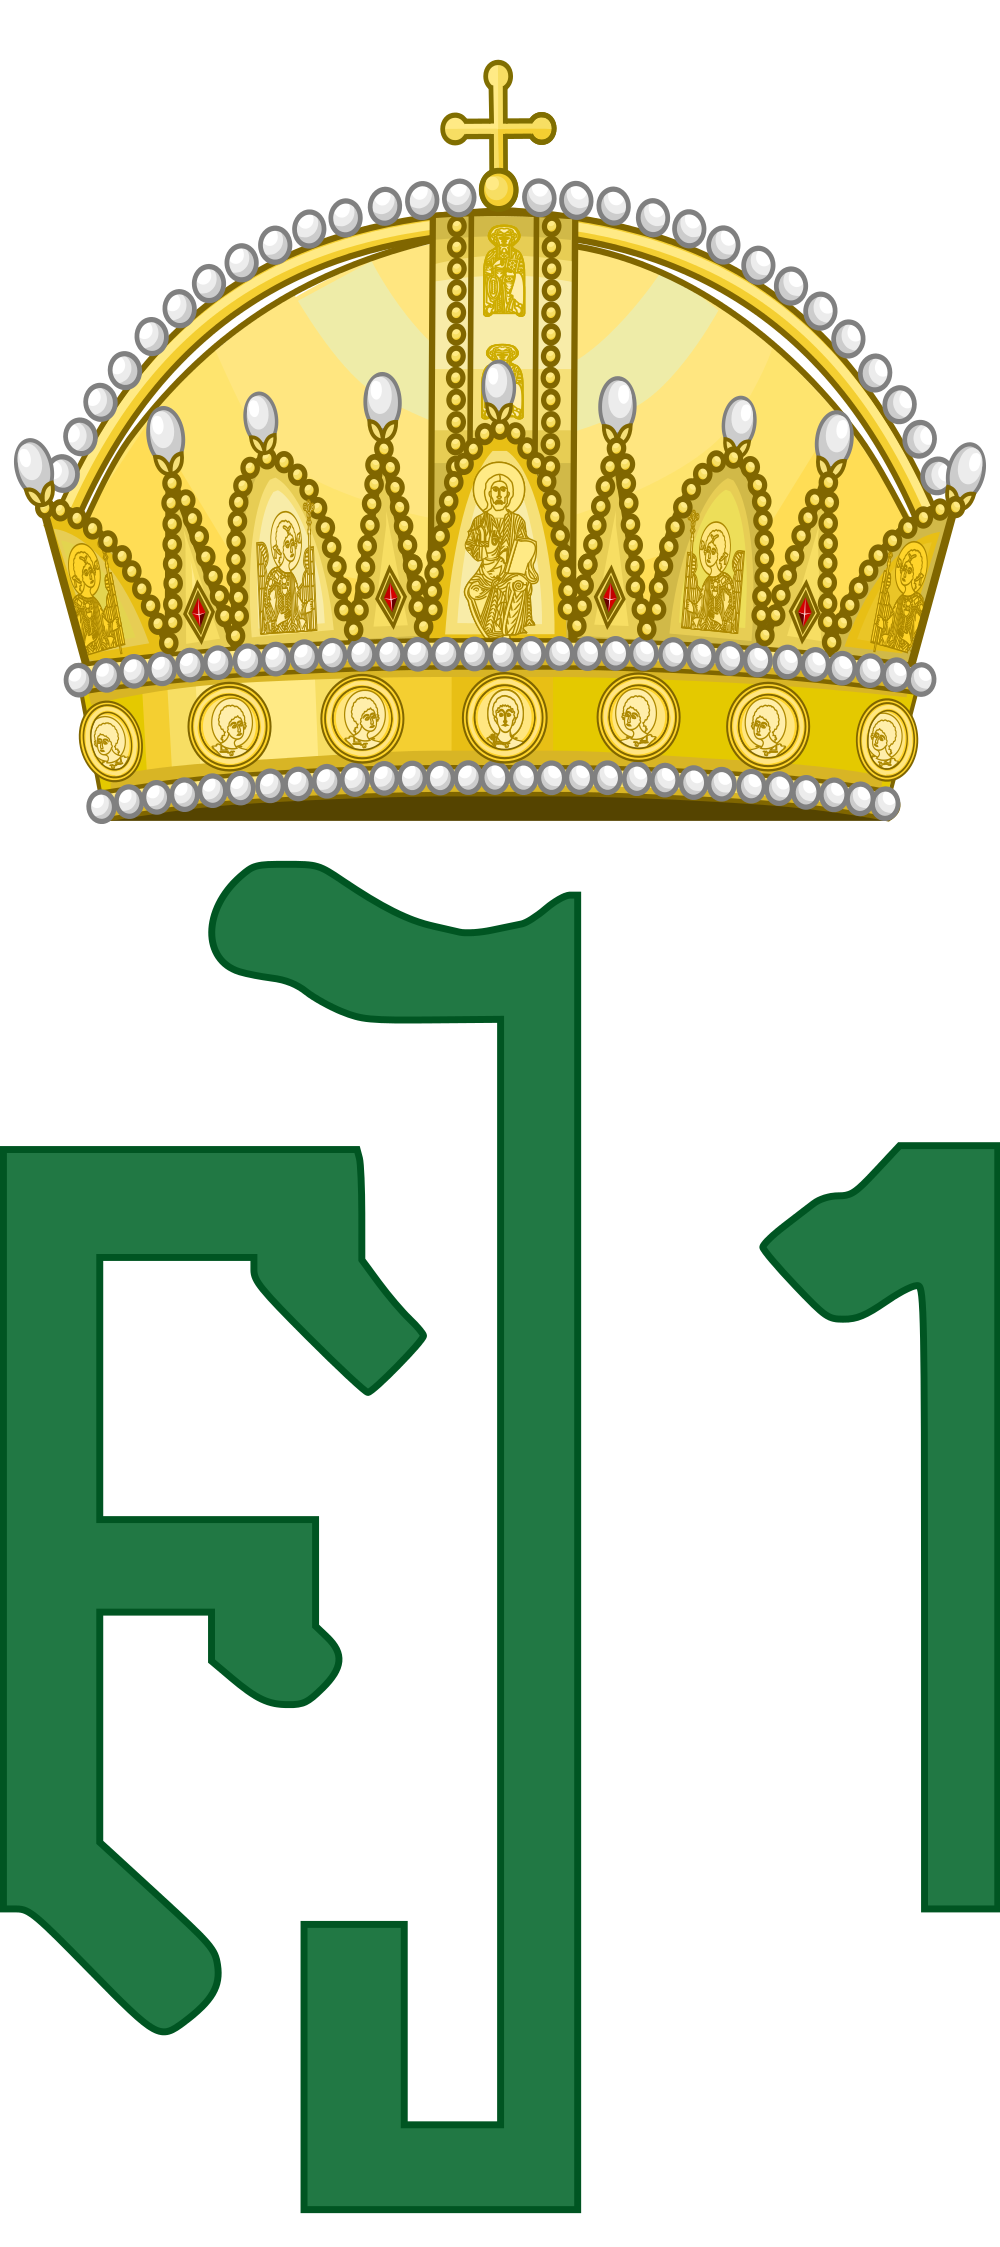 File:Royal Monogram of Emperor Franz Joseph I as King of Hungary.